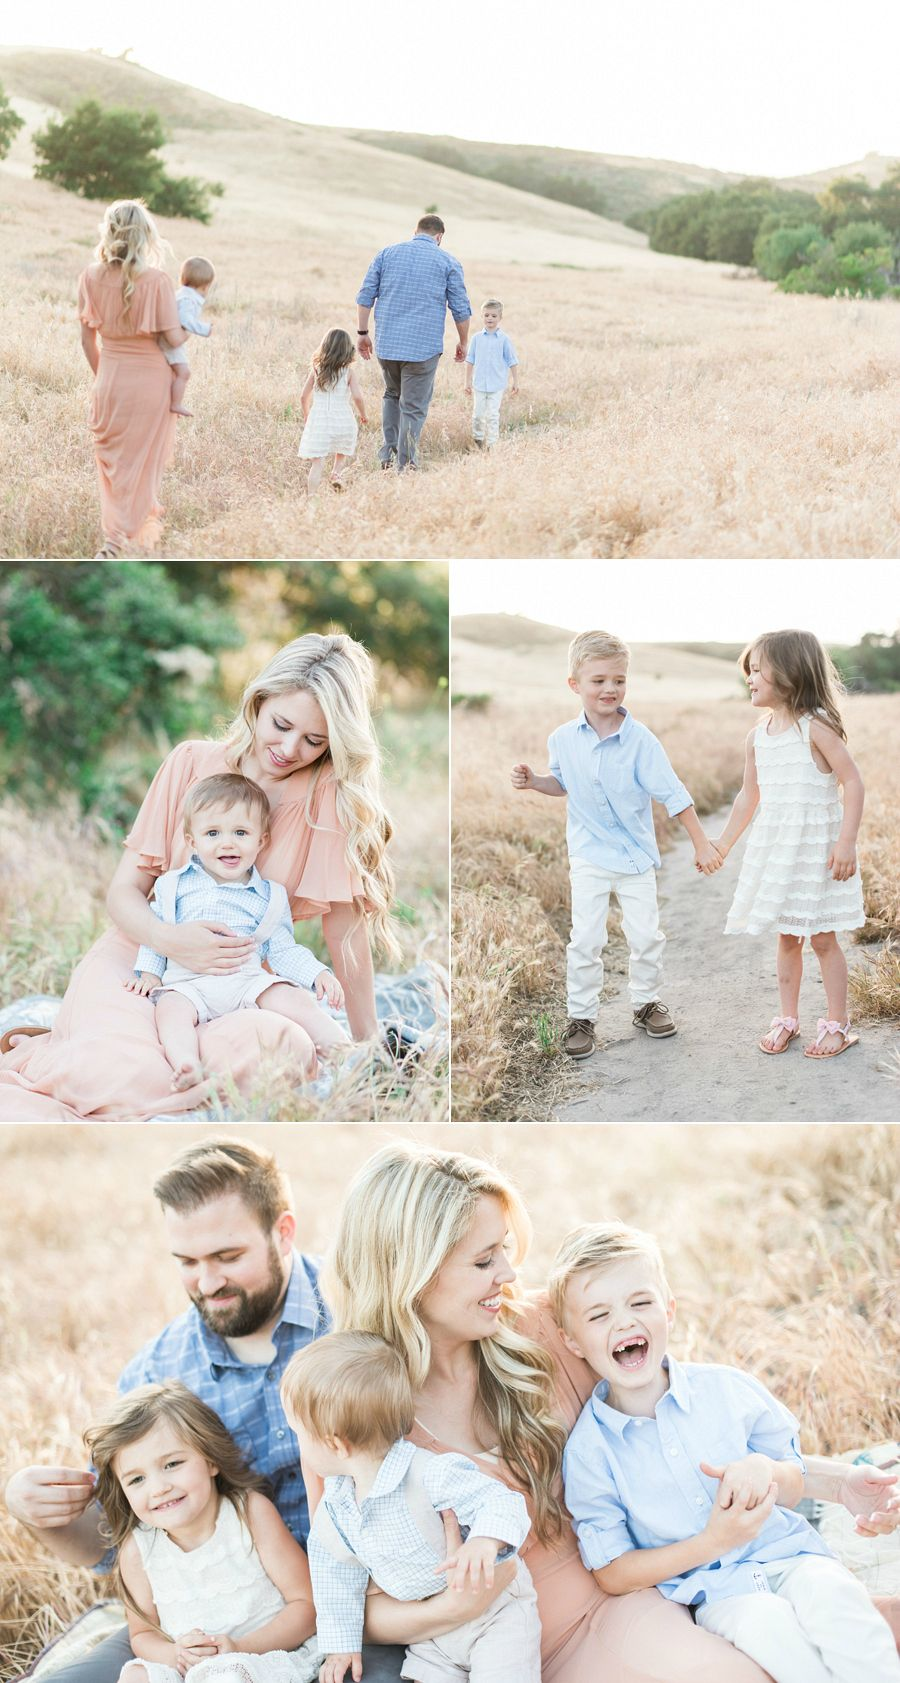 This location is one of my favorites in Orange County in the spring. The light and tones are such a stunning backdrop for family sessions at this time of year.Love this session so much of Ashley and her family in this gorgeous Orange County field....Jen Gagliardi is now…